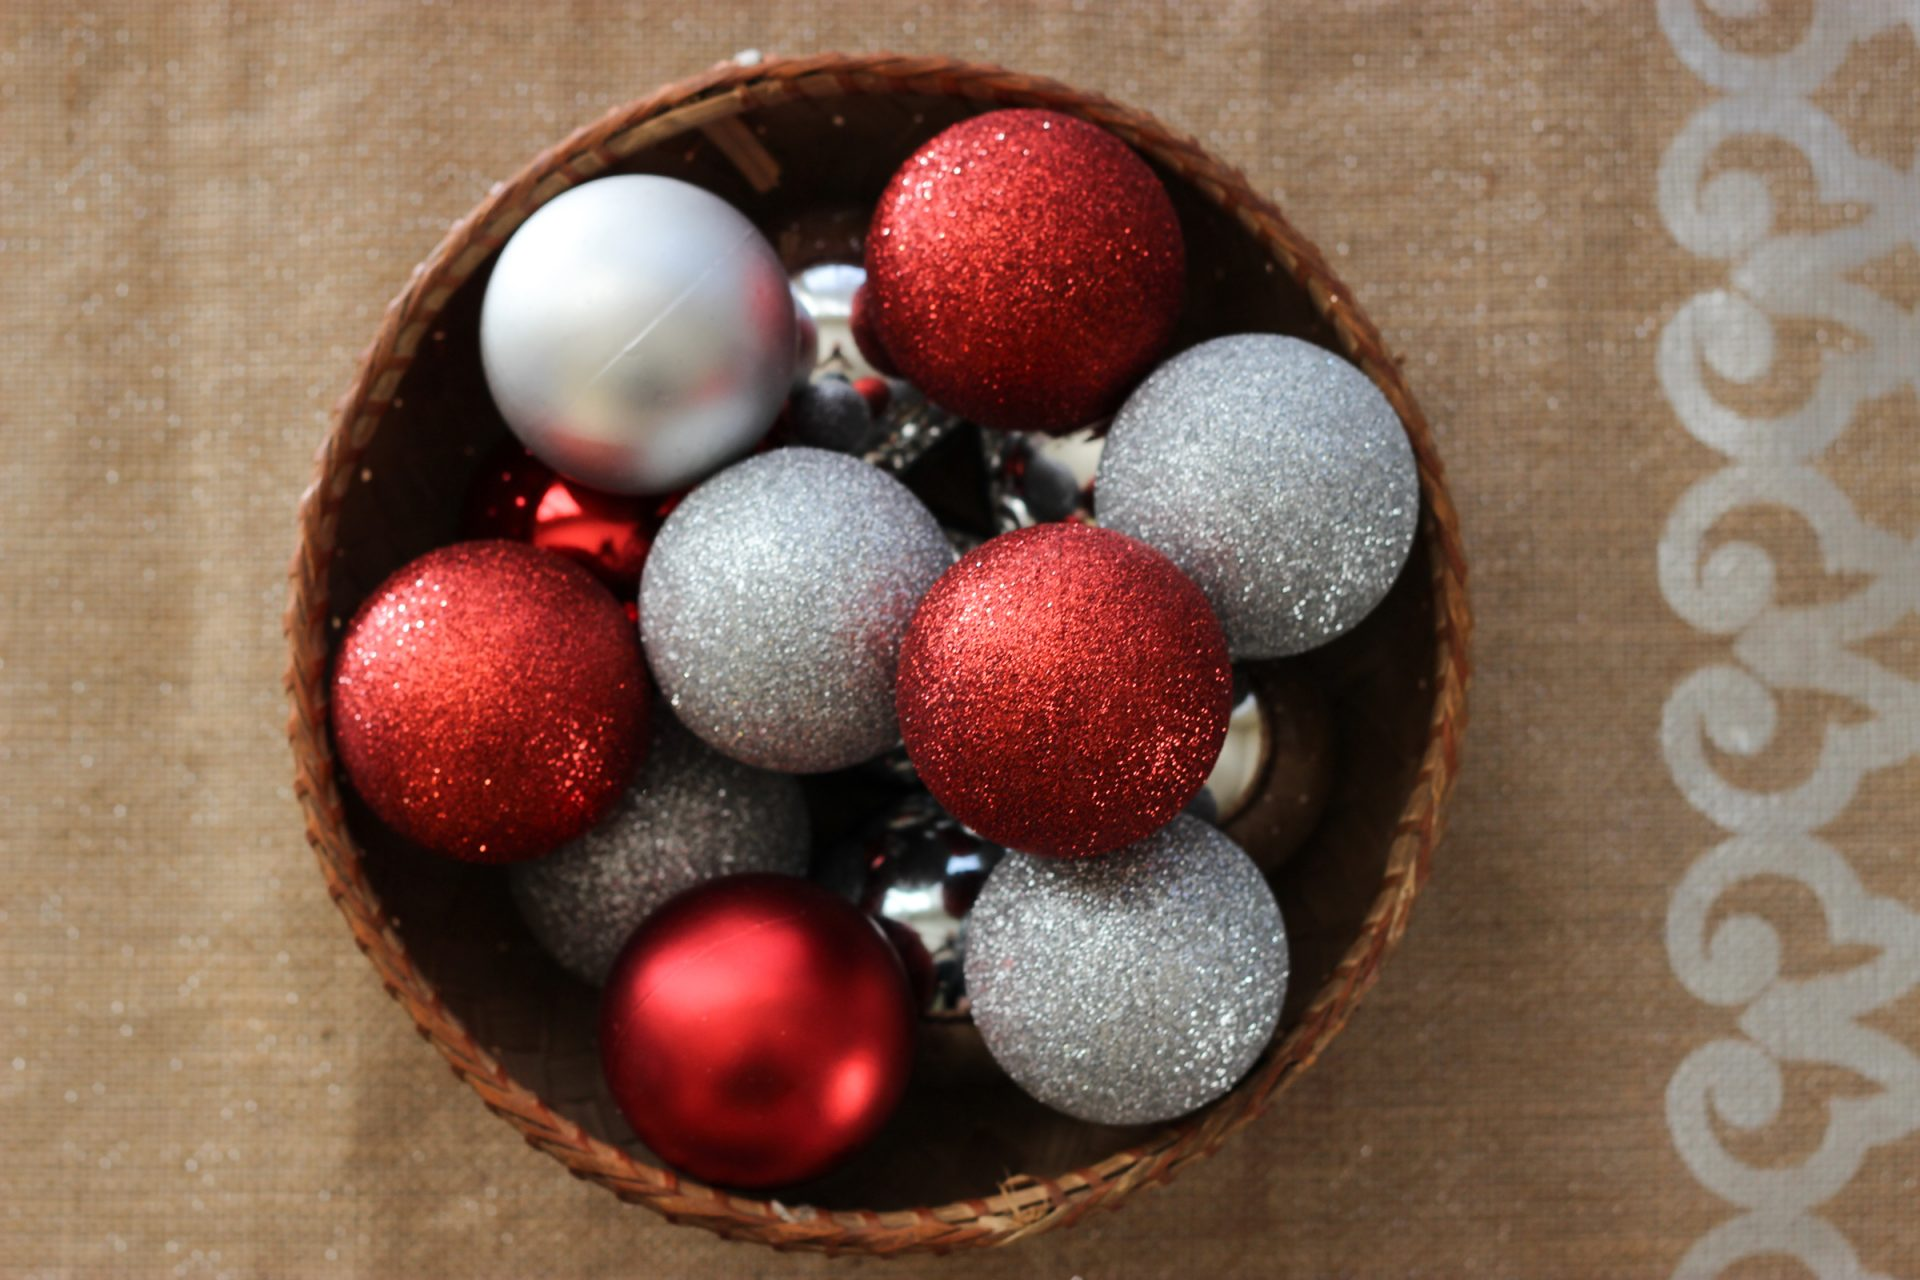 Red & Silver Ball Ornaments in Basket